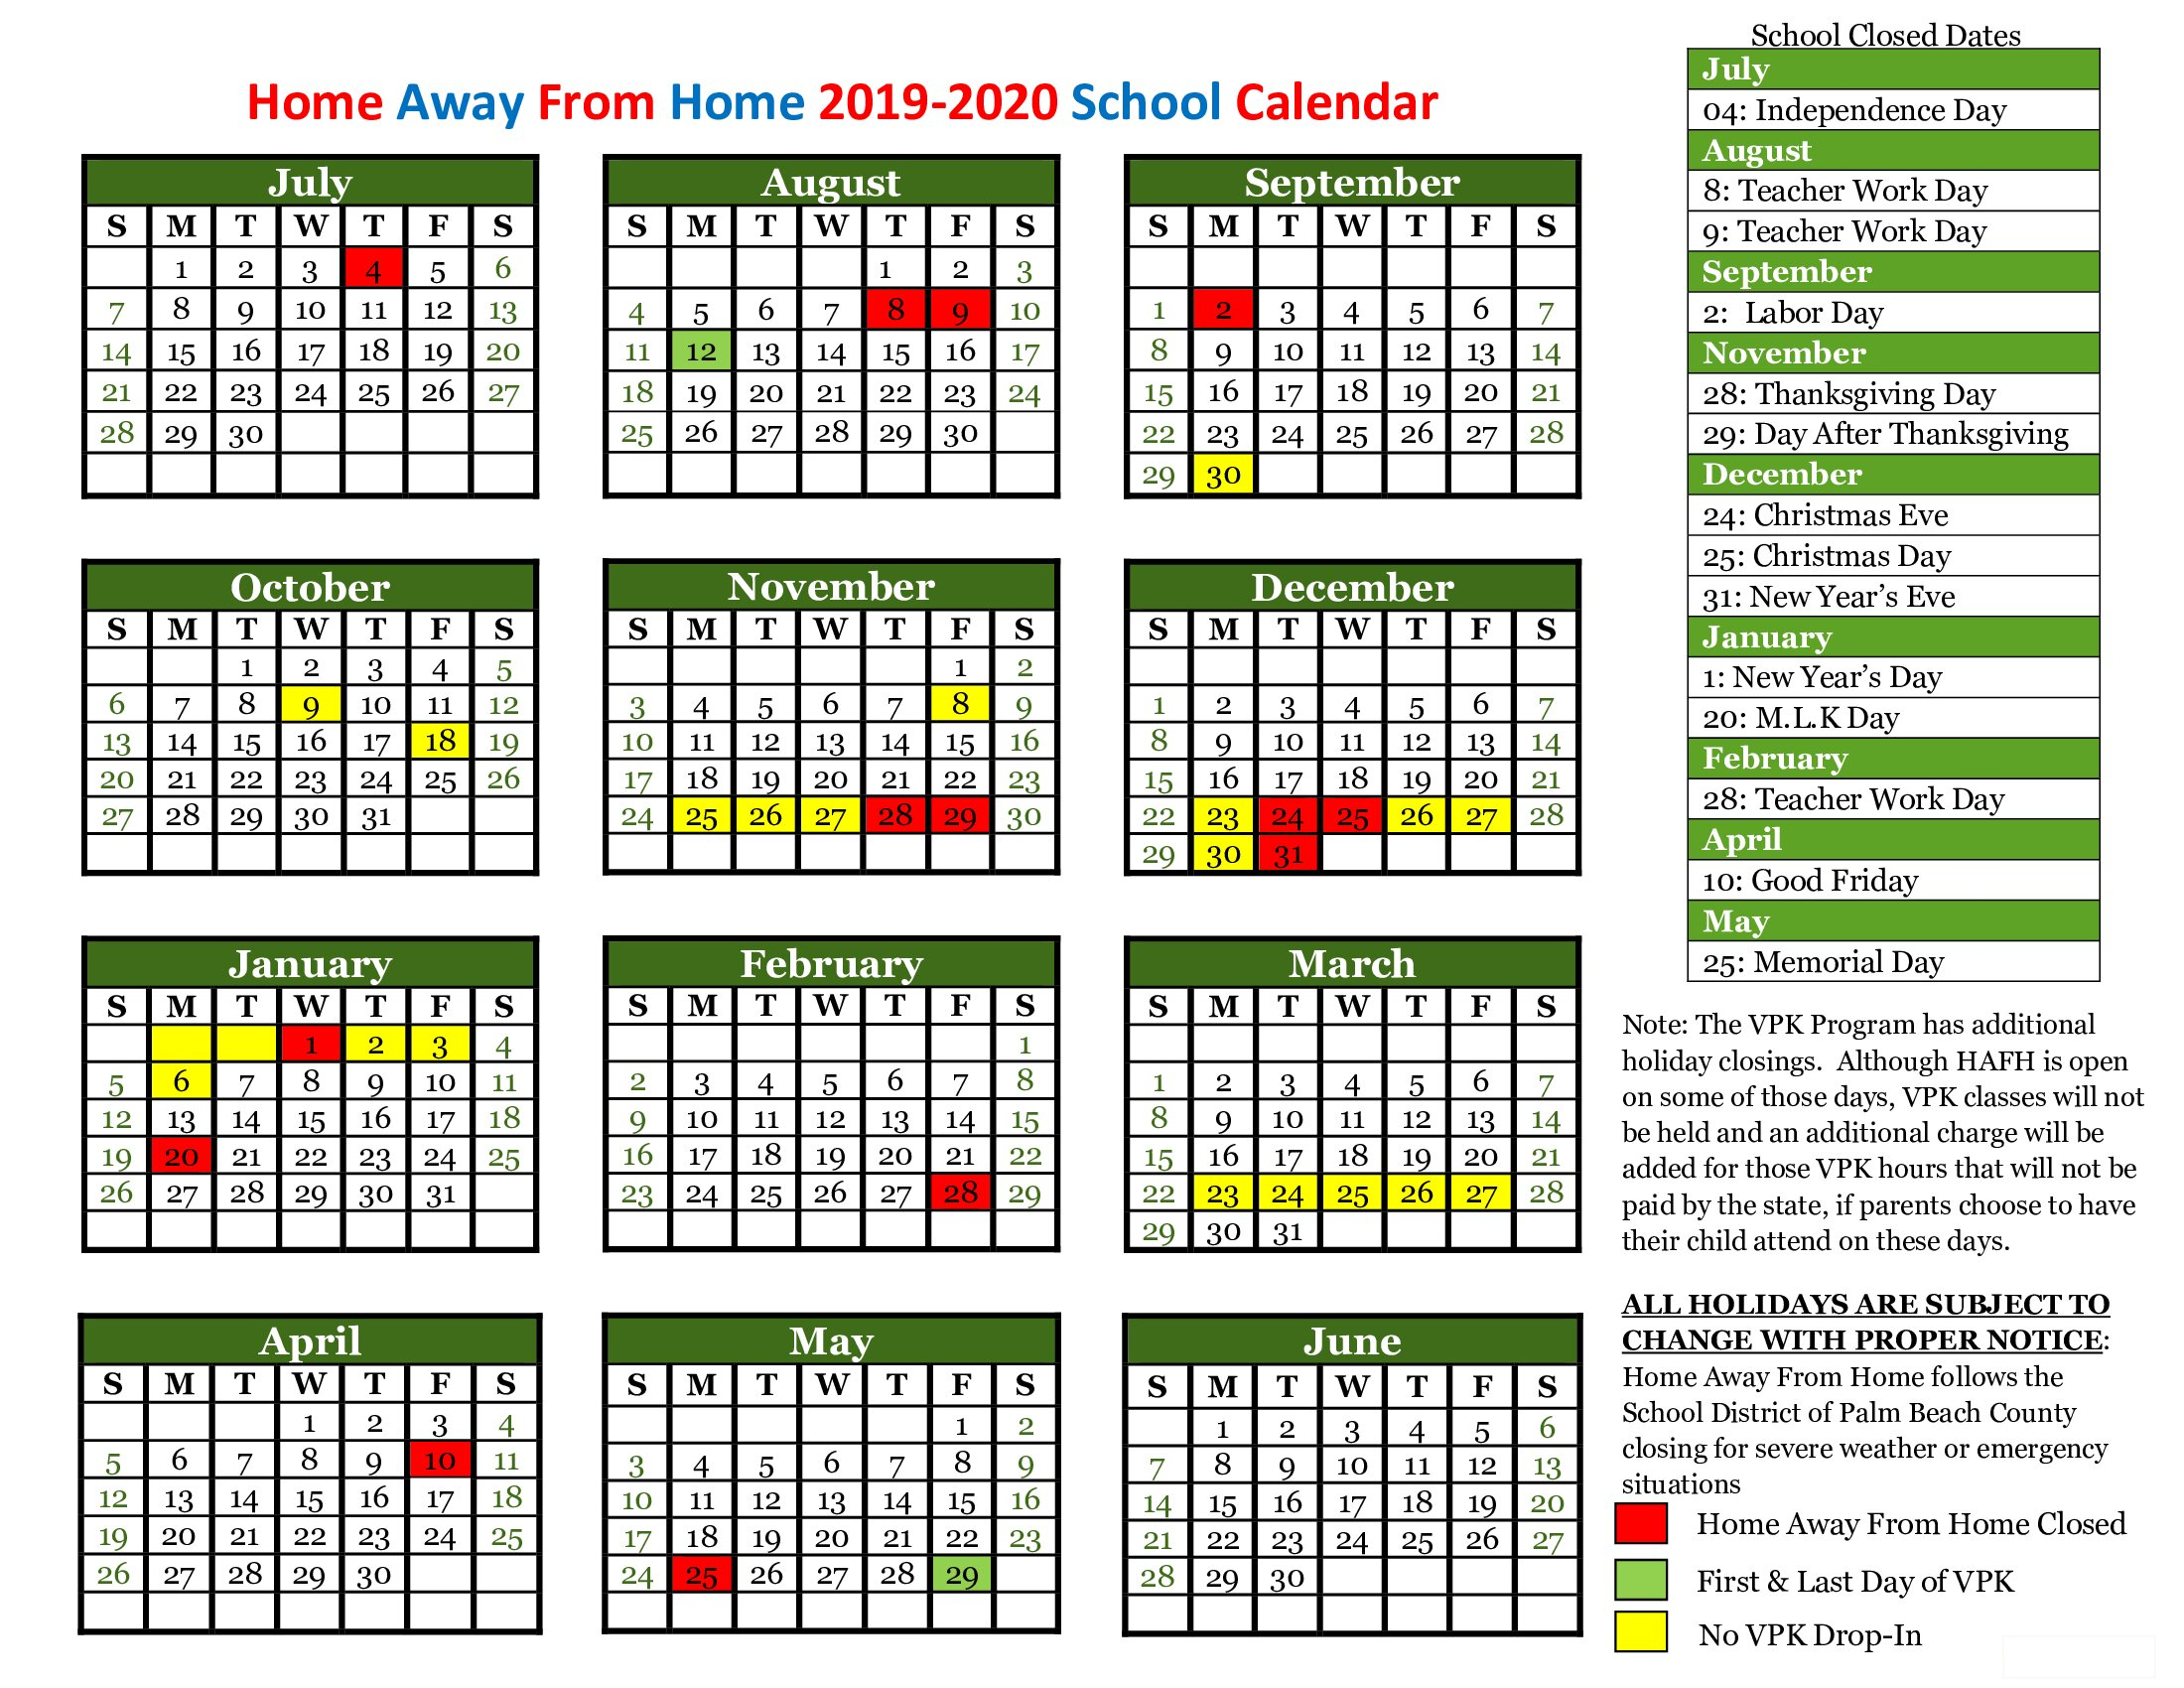 Child Care Holiday Schedule - View School Closings | Home throughout West Palm School Calendar